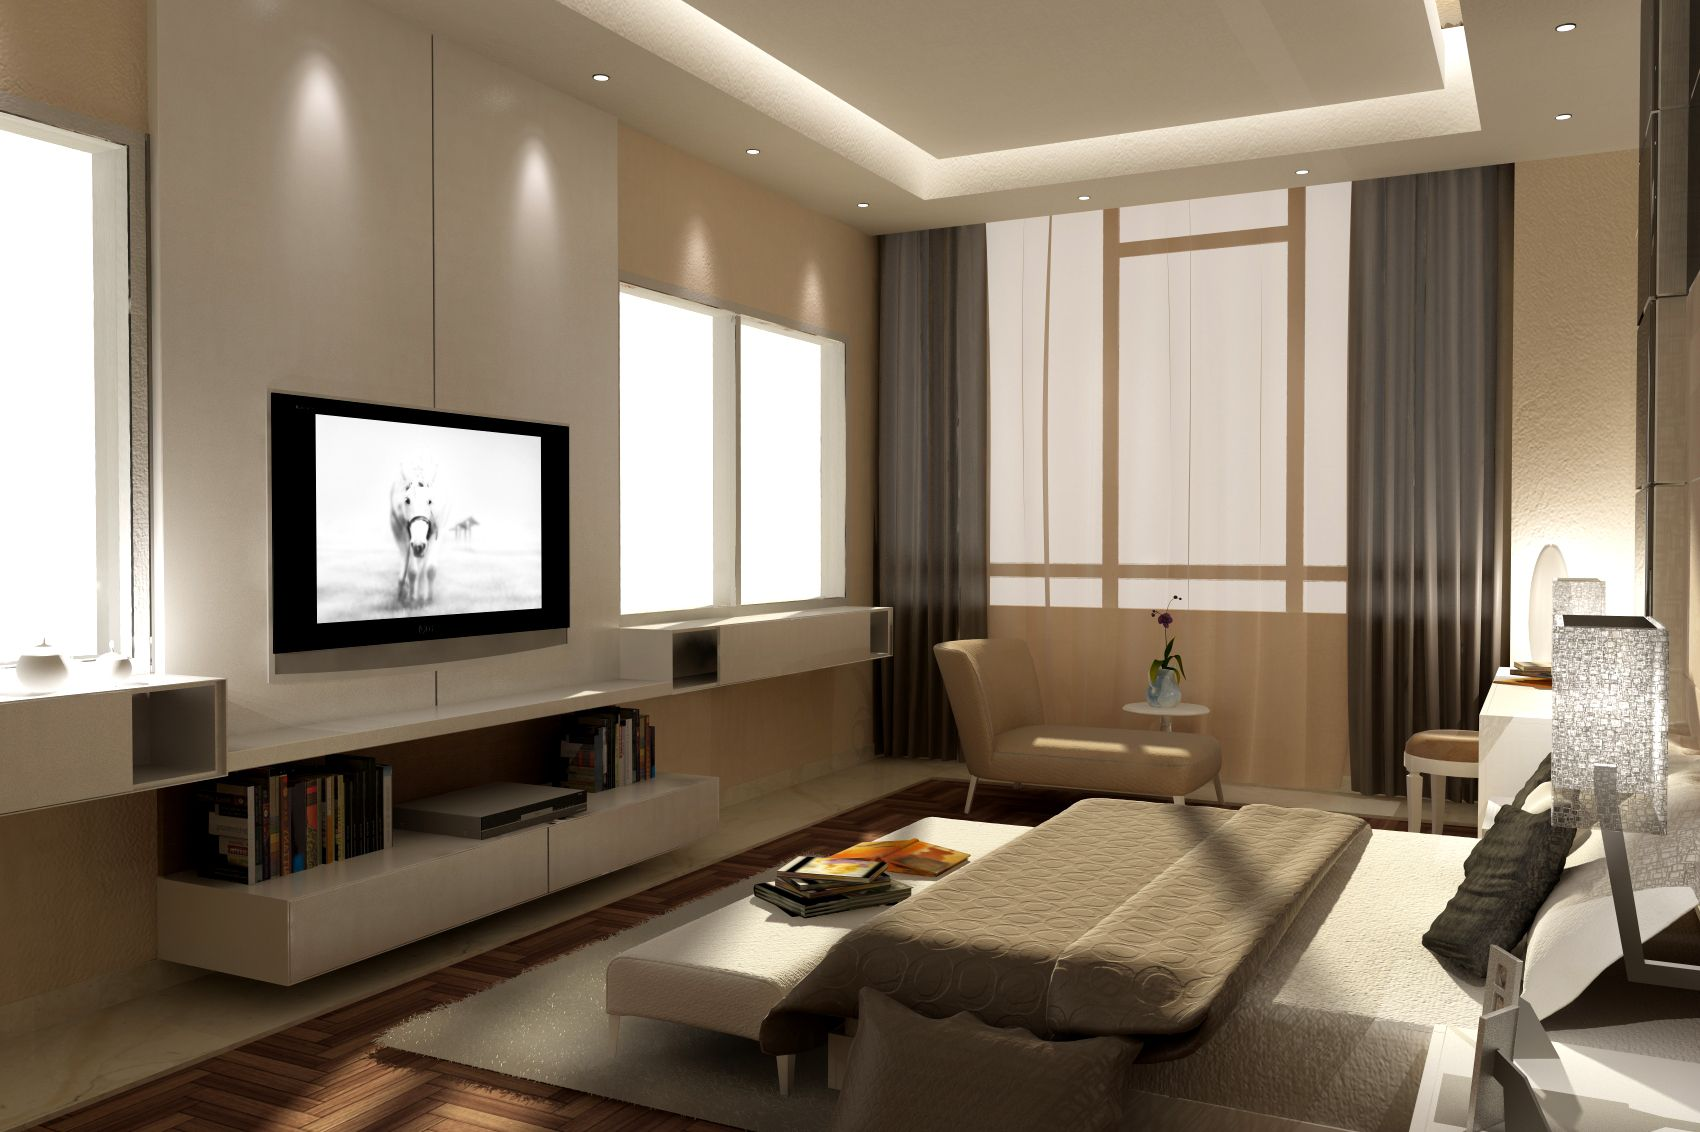 max bedroom interior design 3d max design 3d bedroom design bedroom